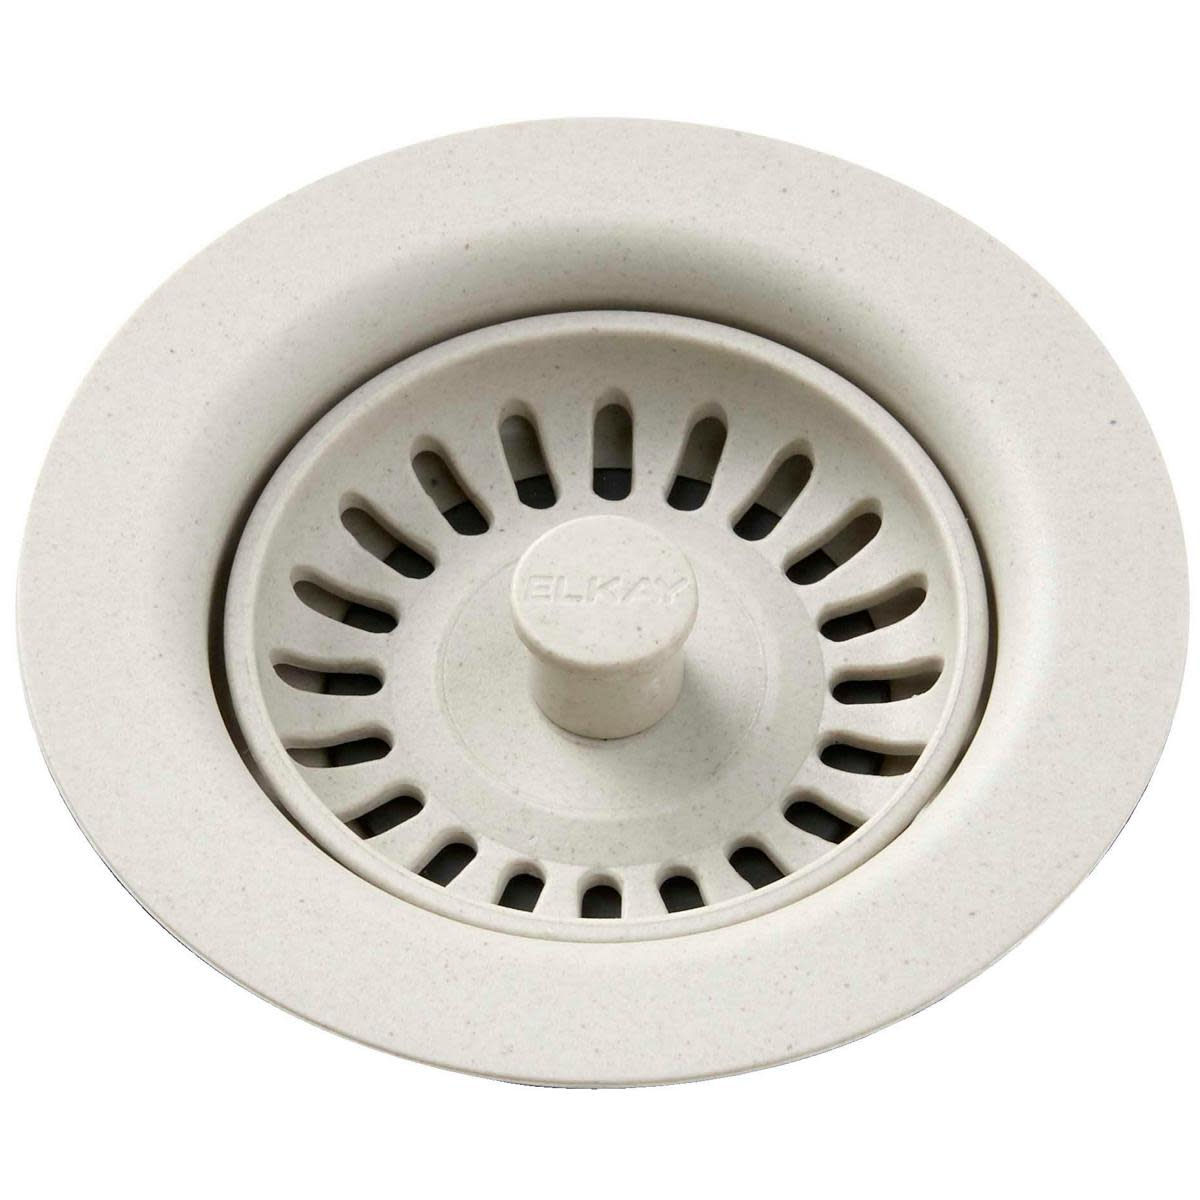 "Elkay LKQS35 3-1/2"" Drain Fitting with Removable Basket Strainer and Rubber Stopper"